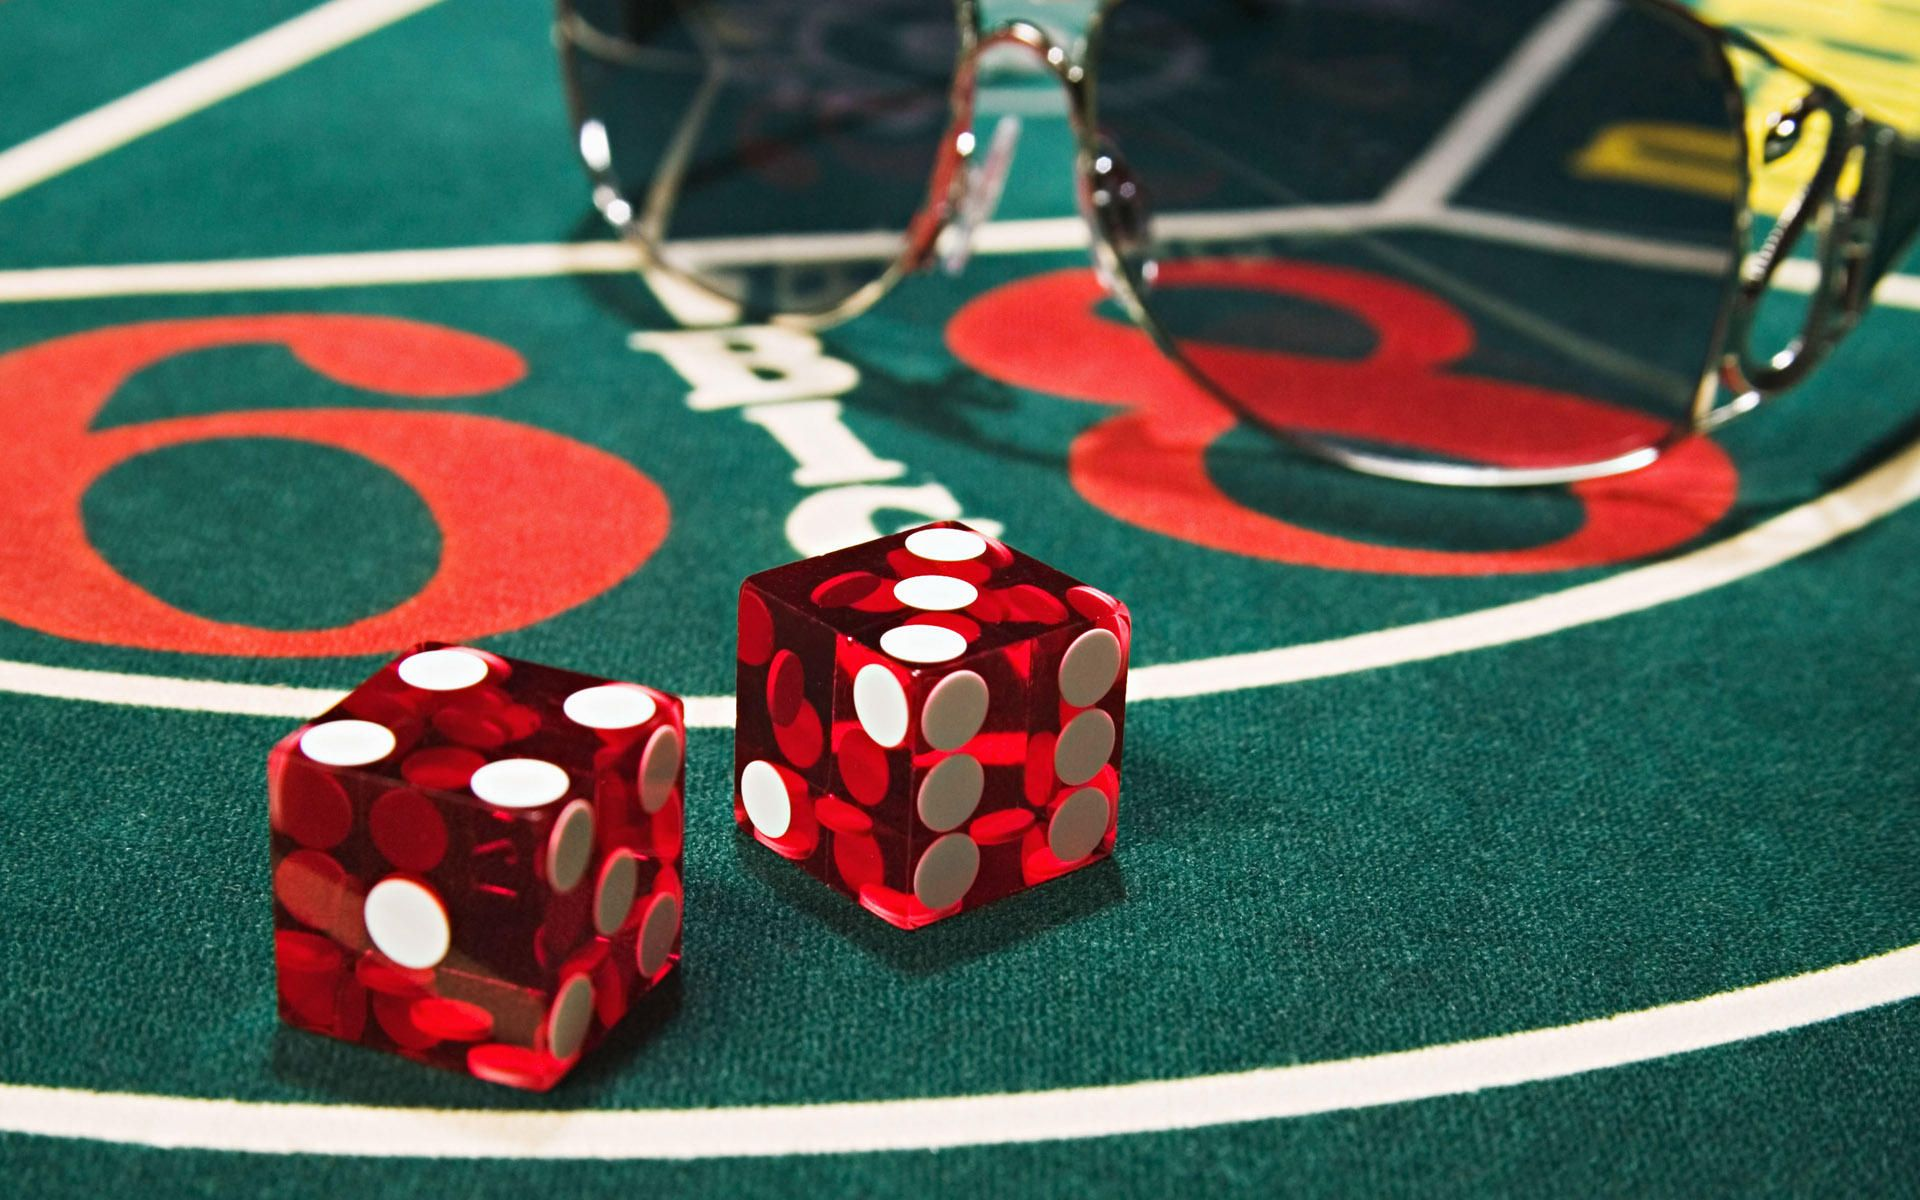 What Is The Best Way To Bet Online At Casino Agent (Agen Casino)?